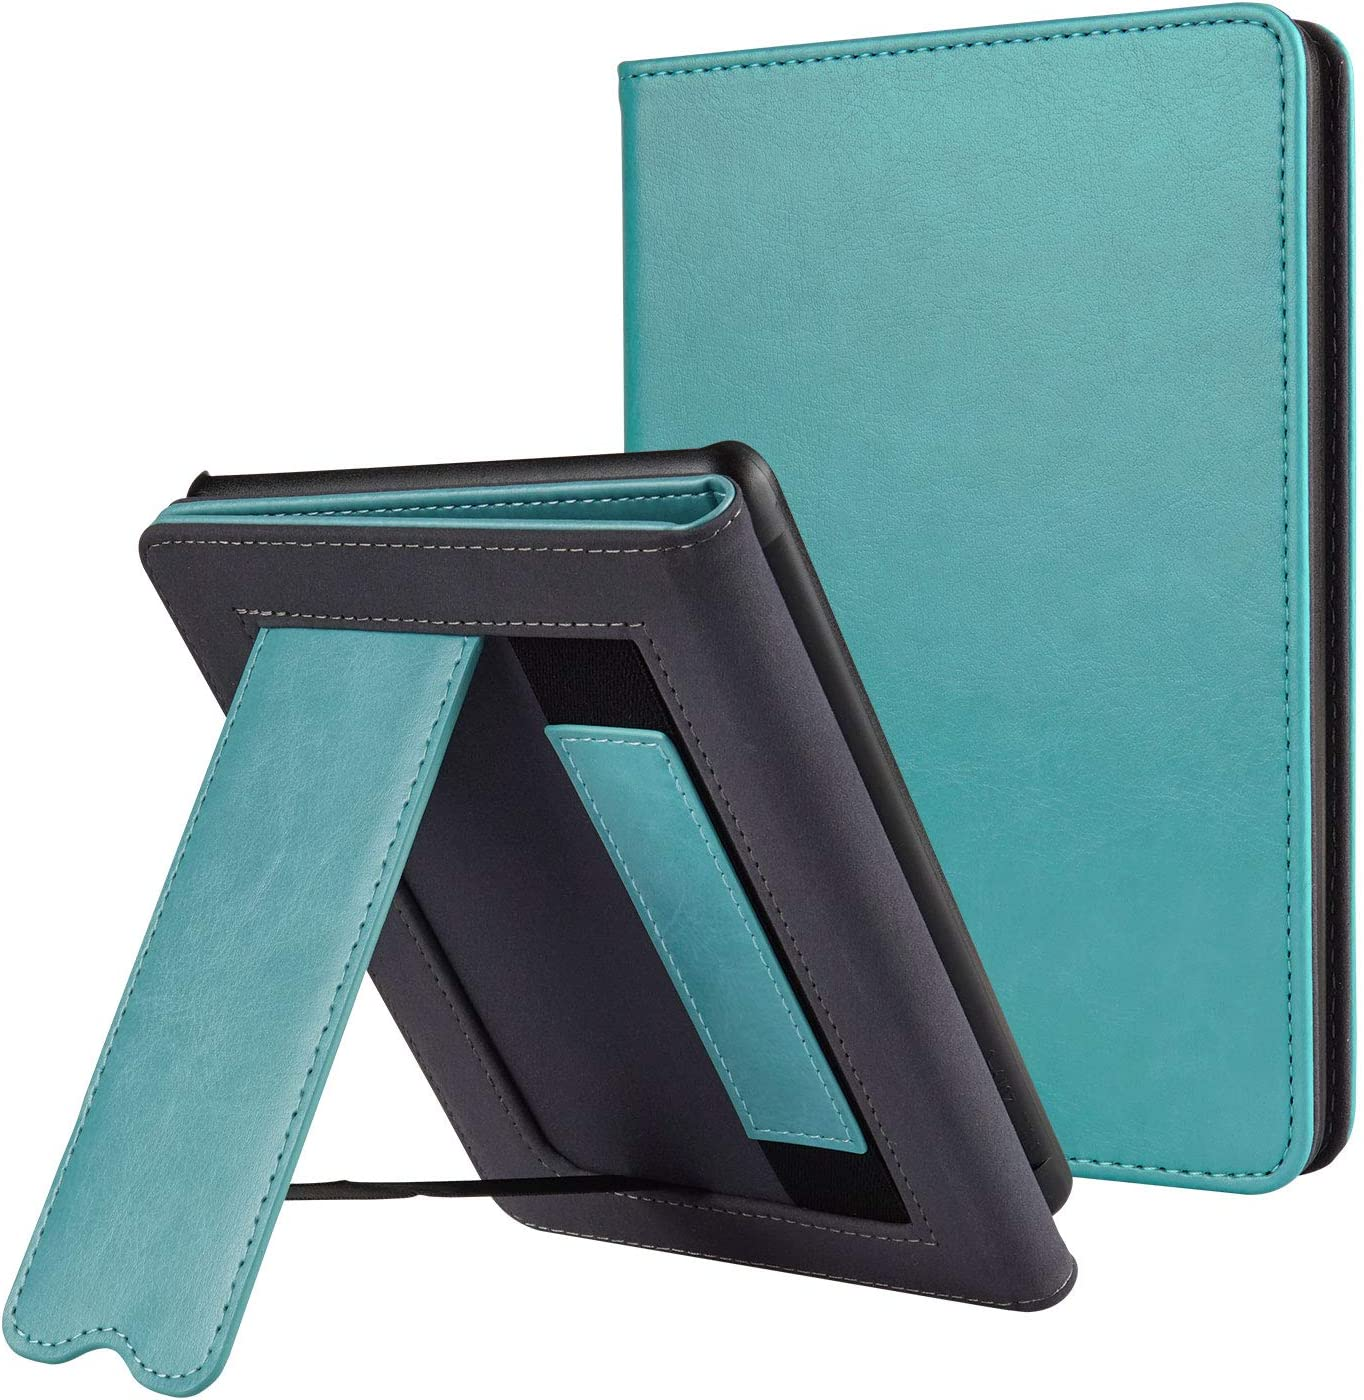 CoBak Kindle Paperwhite Case with Stand Sma Leather Durable - free shipping 55% OFF PU